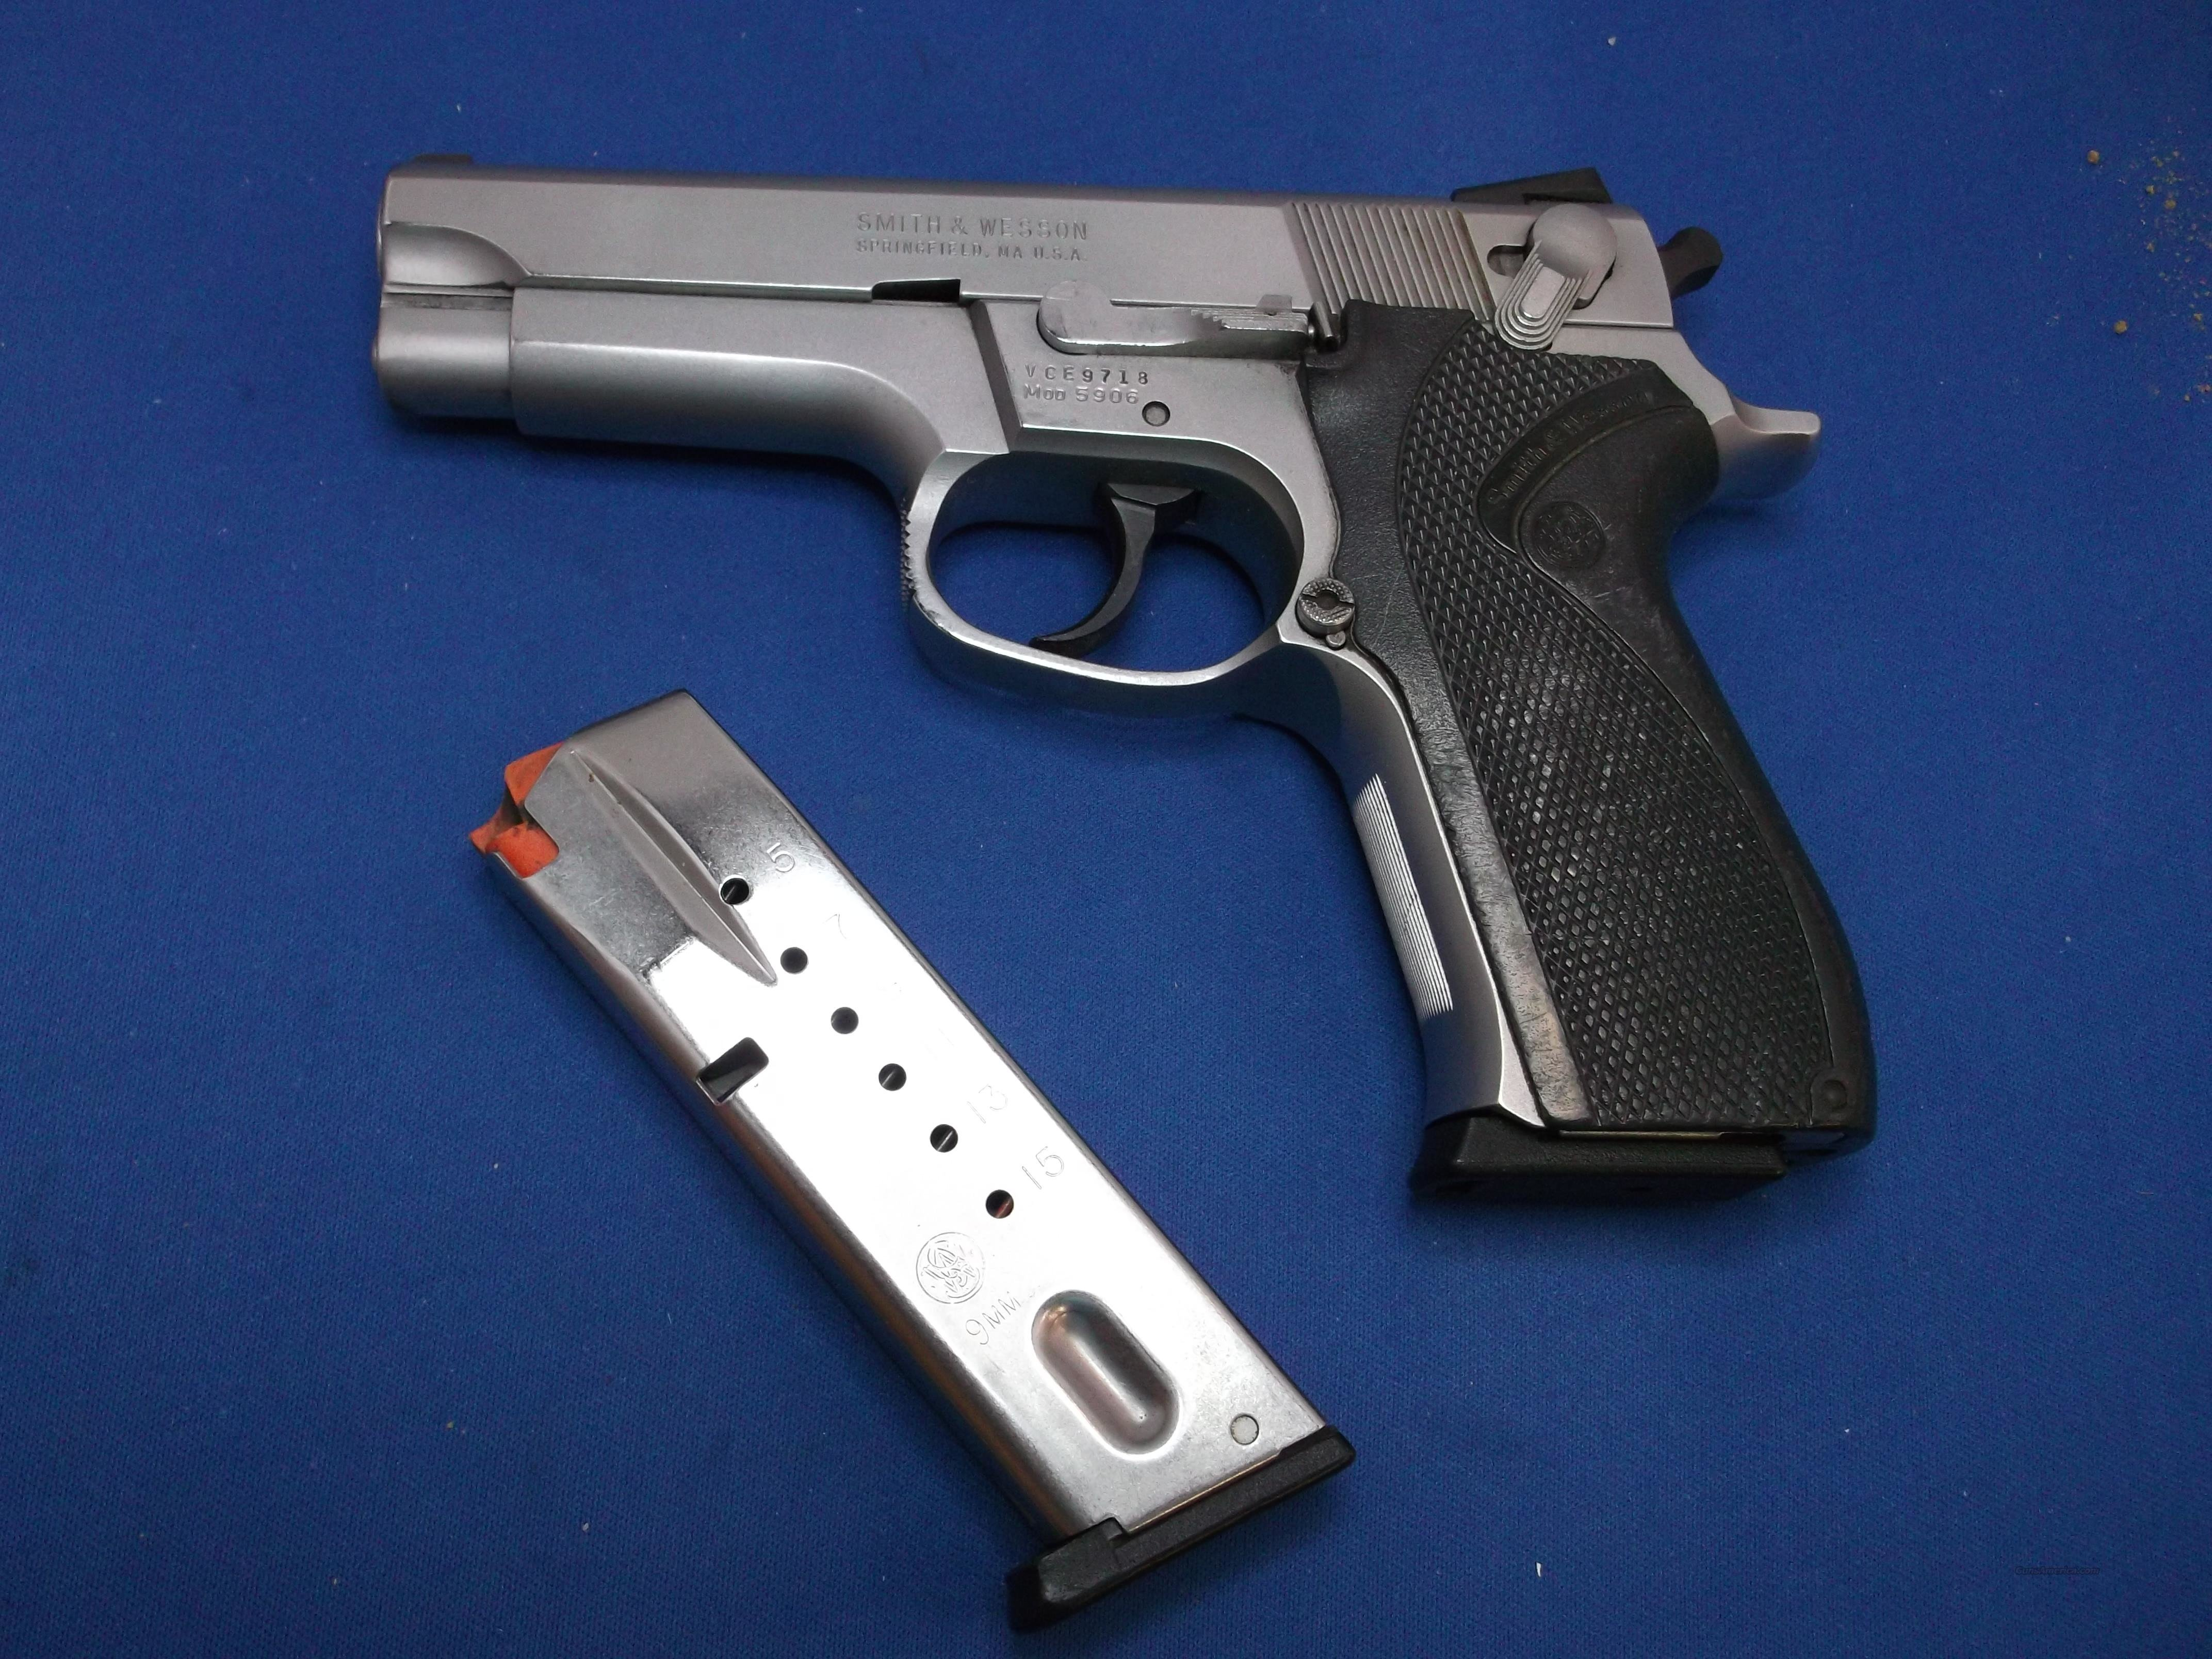 S&W MDL 5906 SS Pistol, Cal. 9mm, Very Good  Guns > Pistols > Smith & Wesson Pistols - Autos > Steel Frame